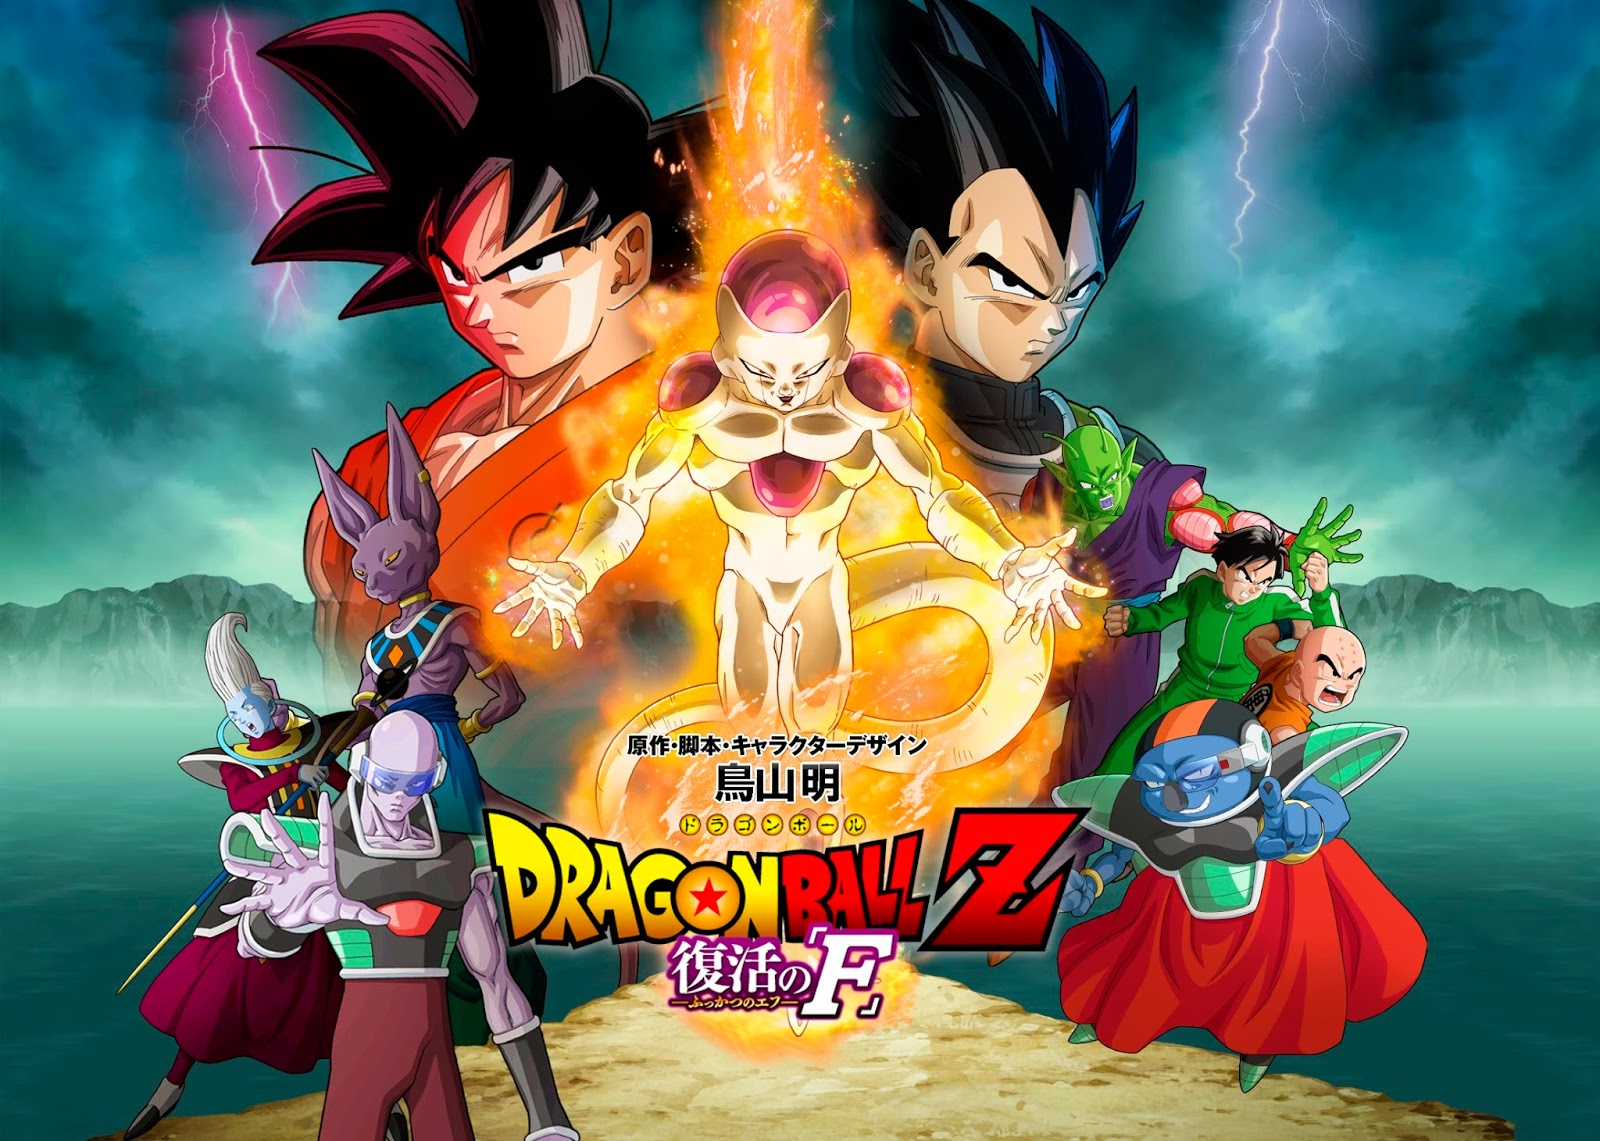 Dragon Ball Z: Resurrection 'F' film dates have been ...